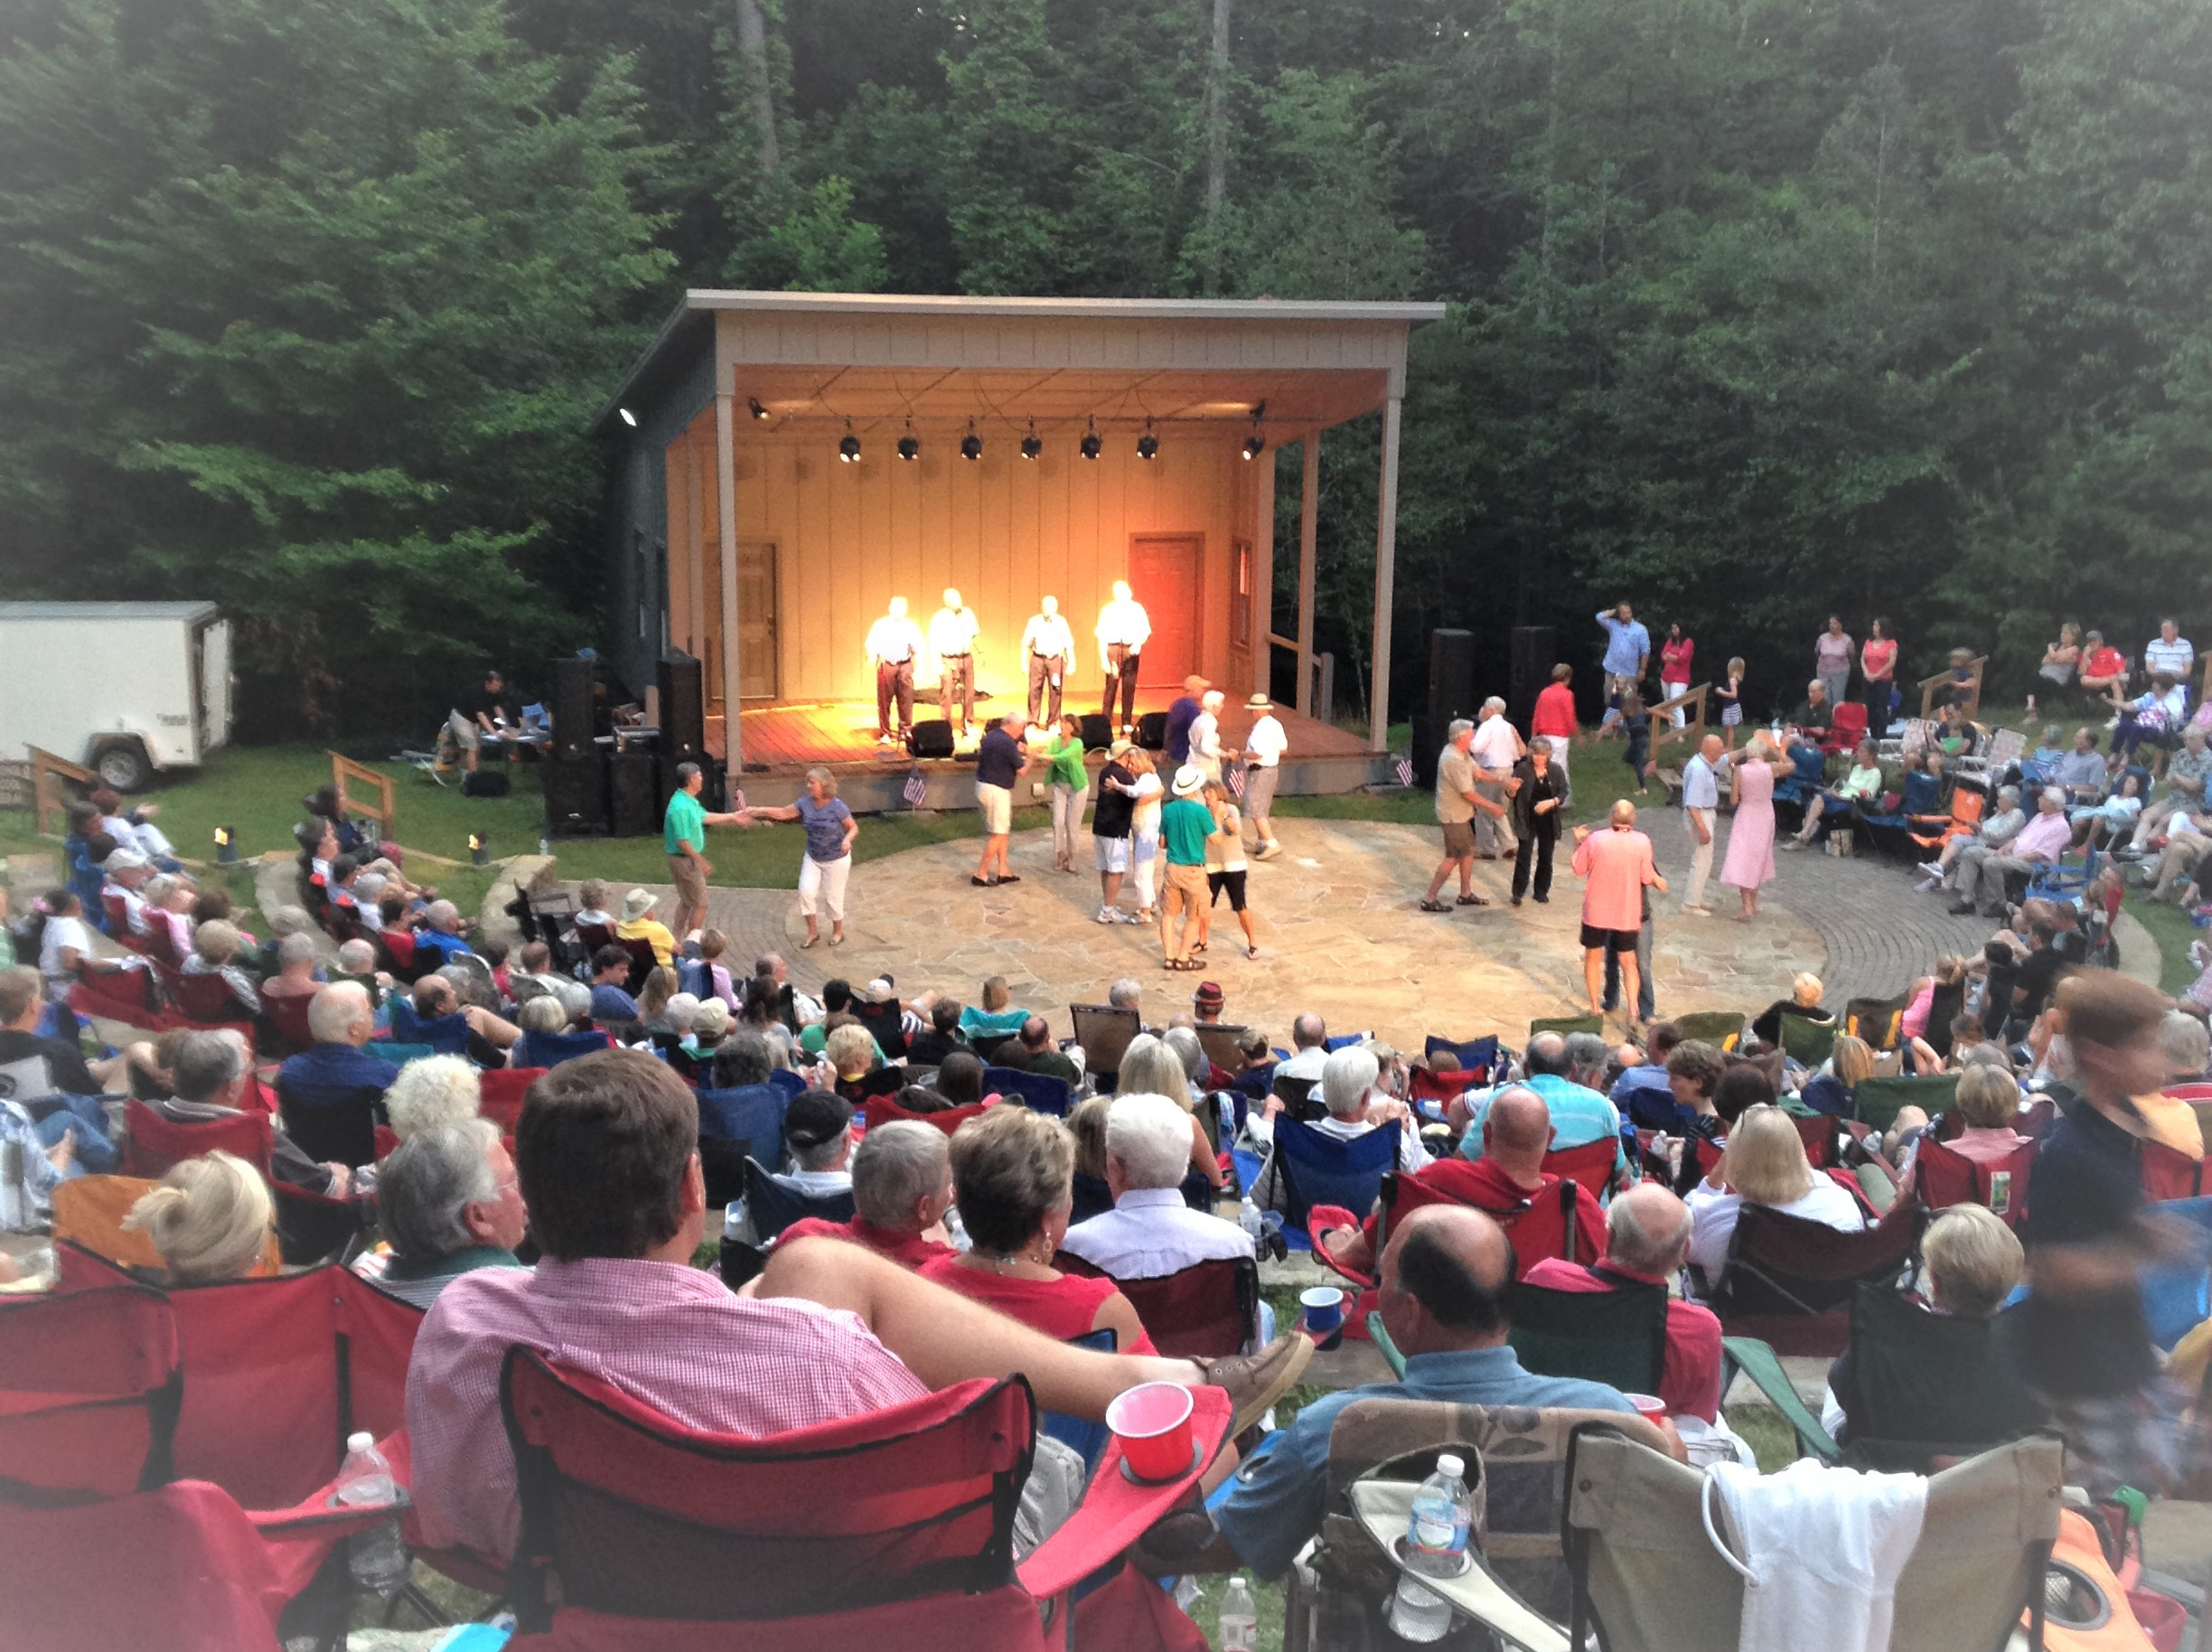 The Sock Hops amphitheatre